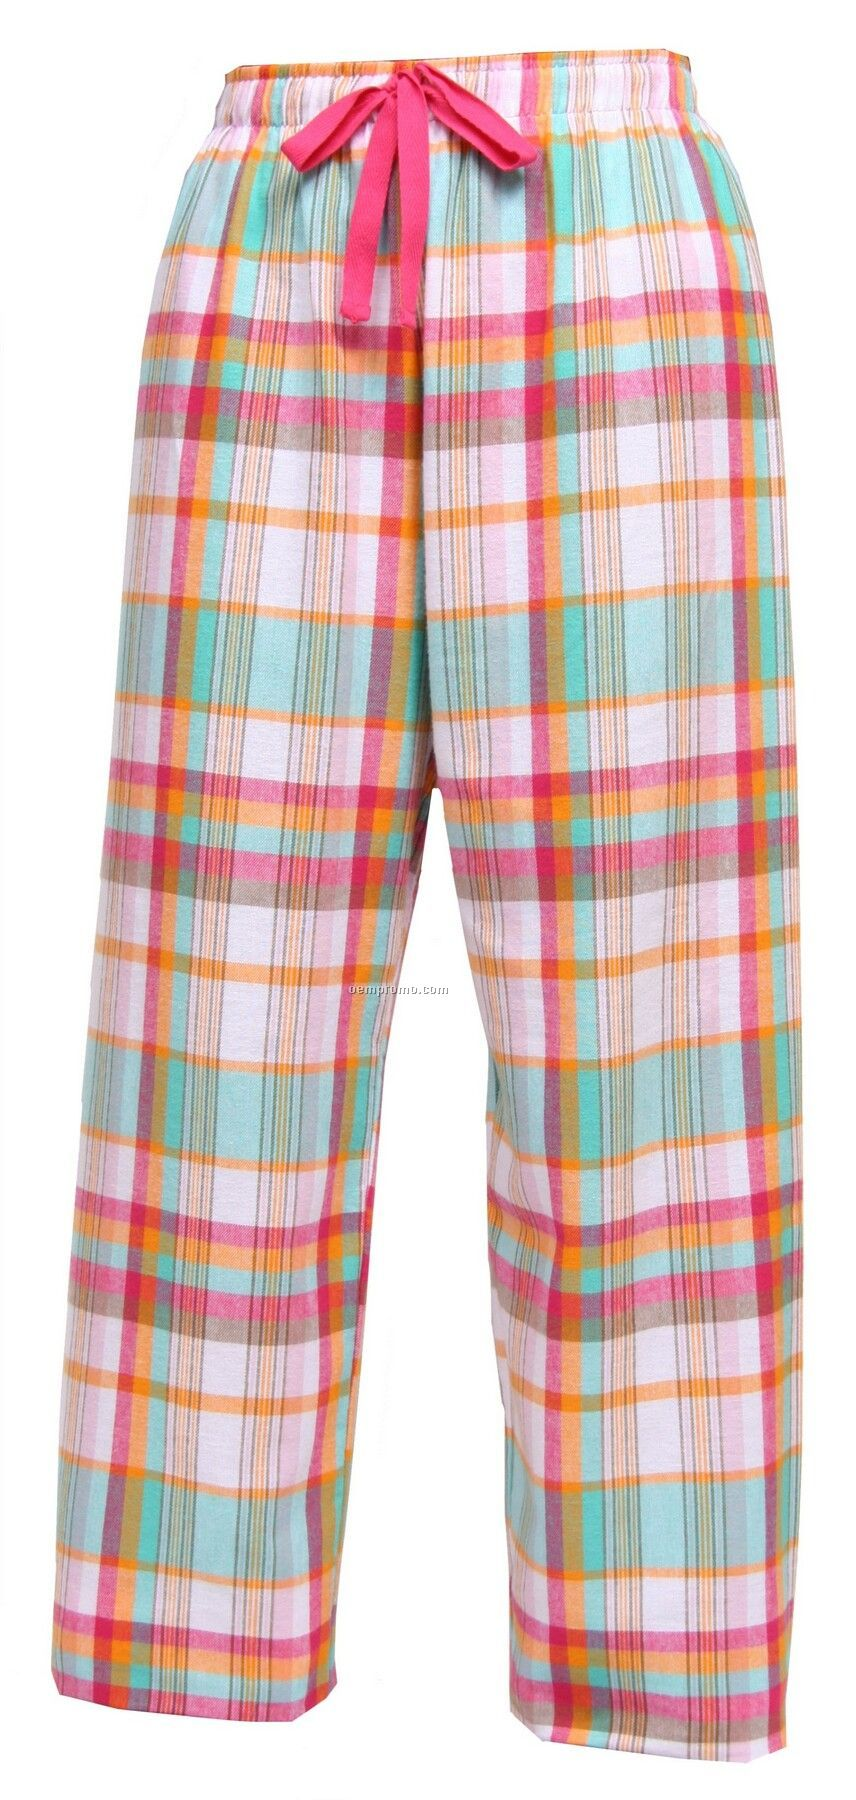 Youth Beach Fashion Flannel Pant With Tie Cord